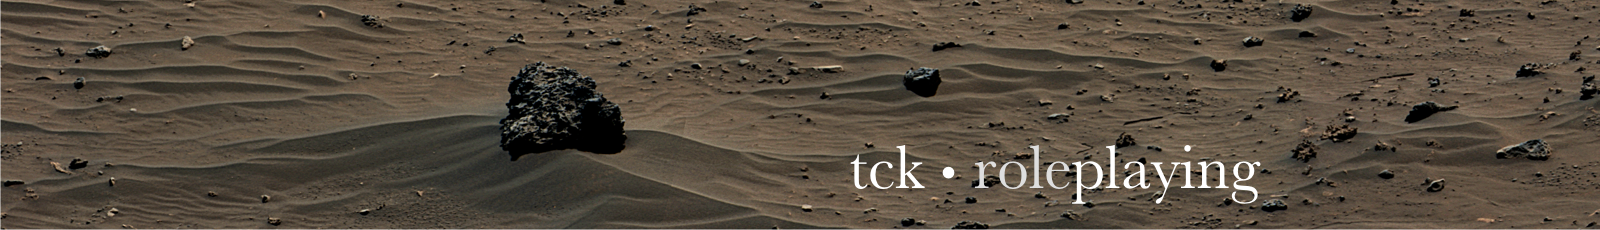 TCK Roleplaying Blog